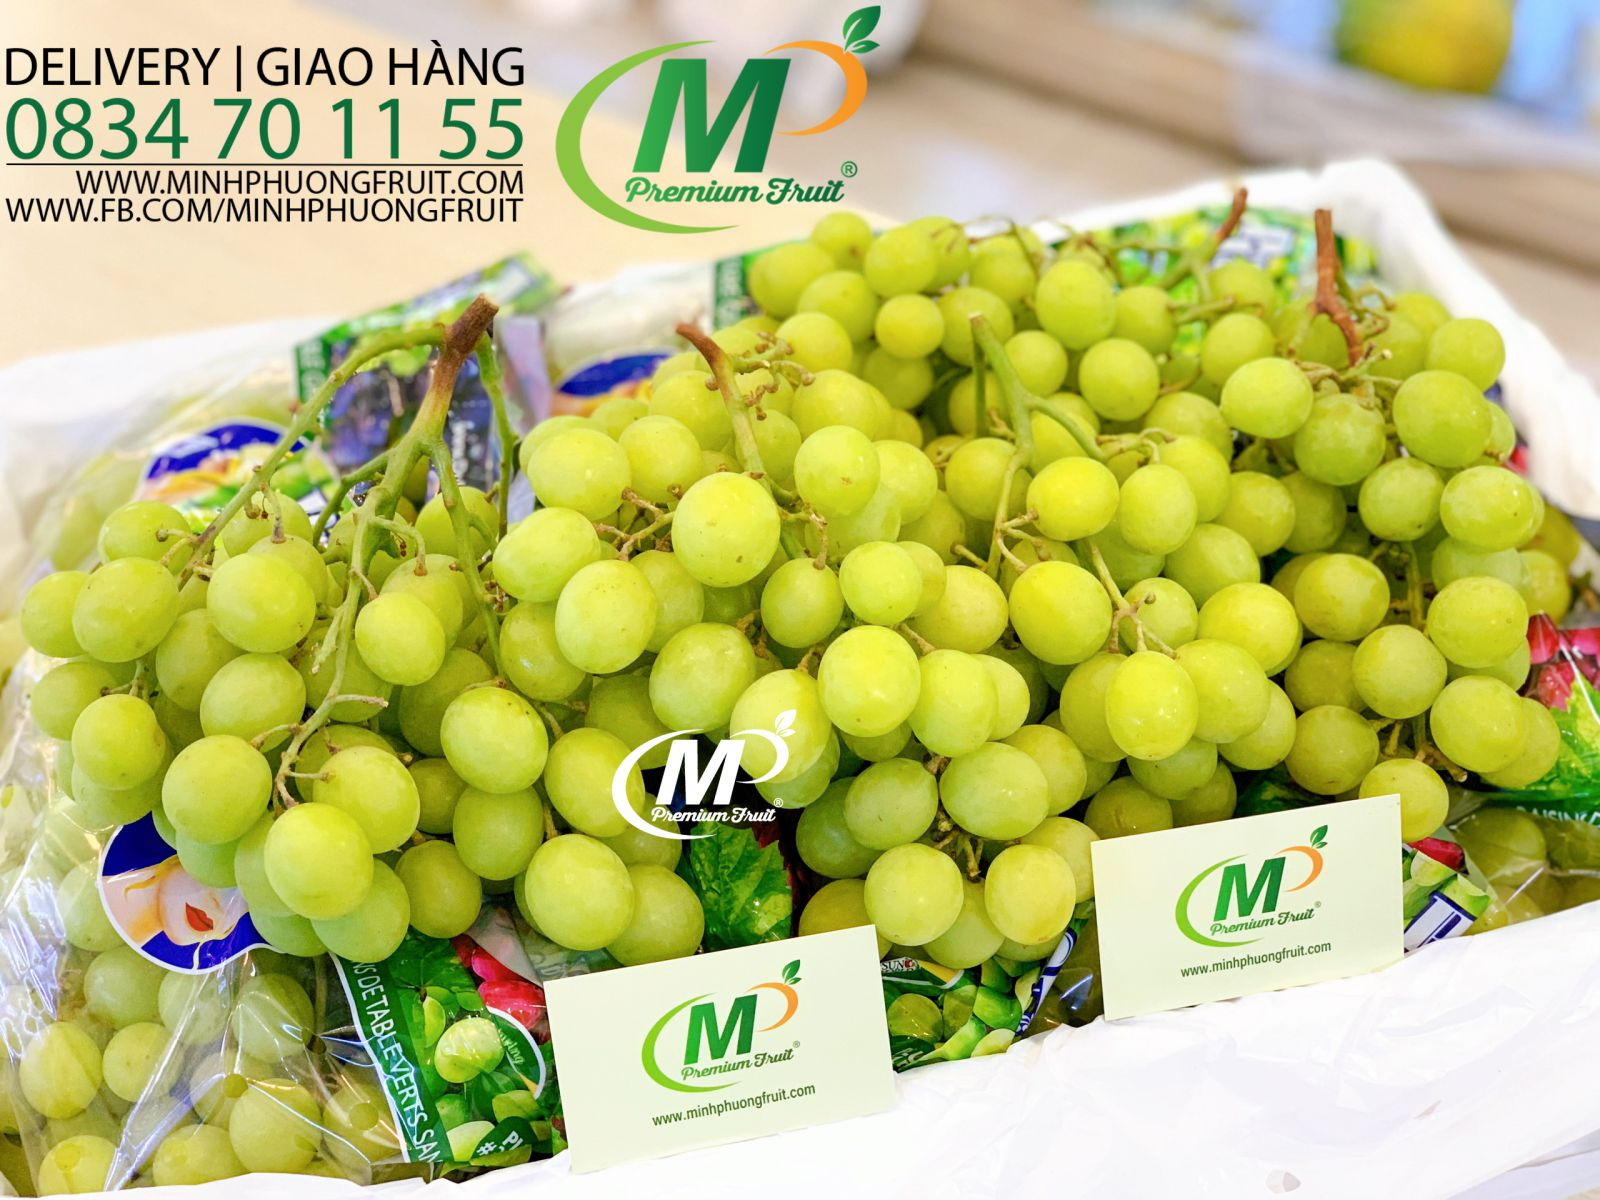 Nho Xanh Autumn Crisp Pretty Lady Mỹ tại MP Fruits